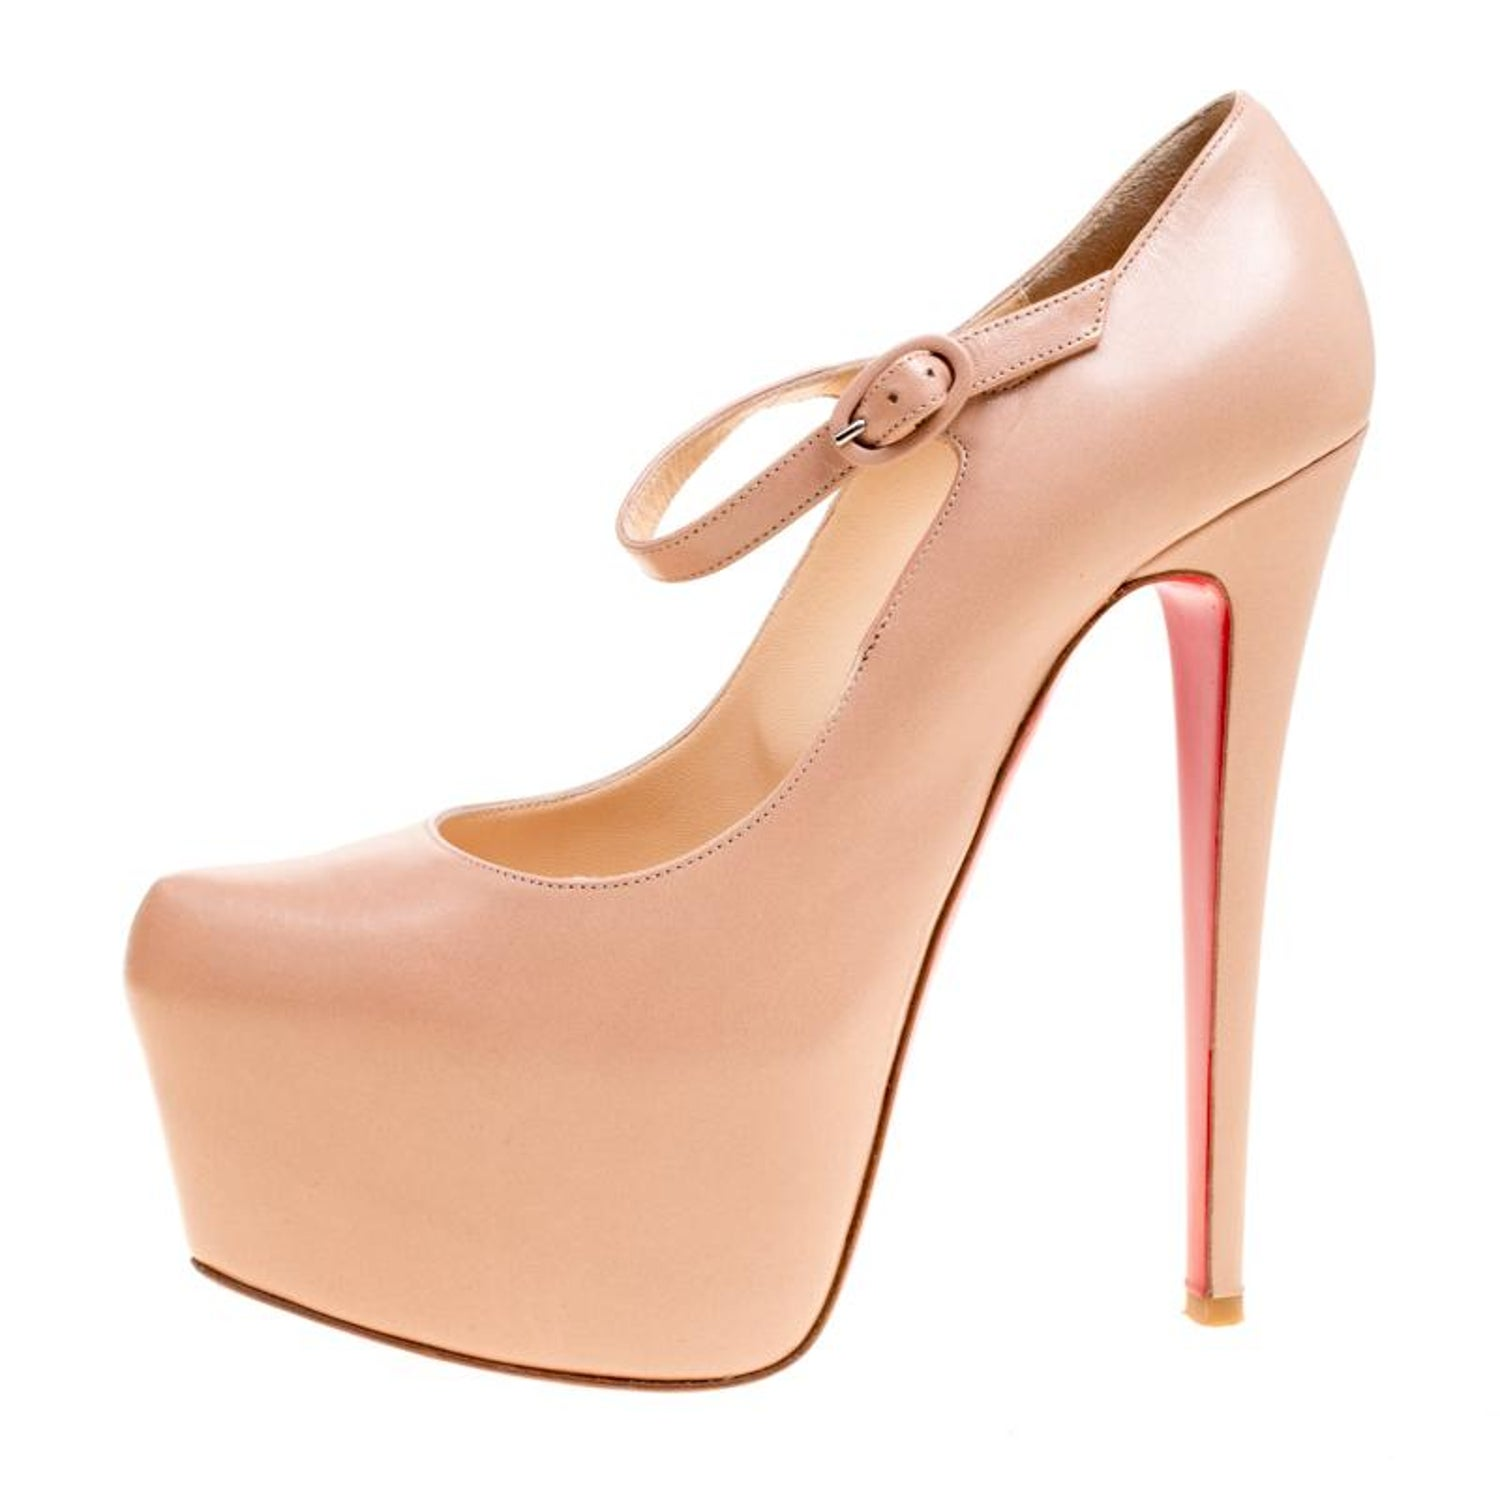 2ca178003055 Christian Louboutin Beige Leather Lady Daf Mary Jane Pumps Size 38 For Sale  at 1stdibs